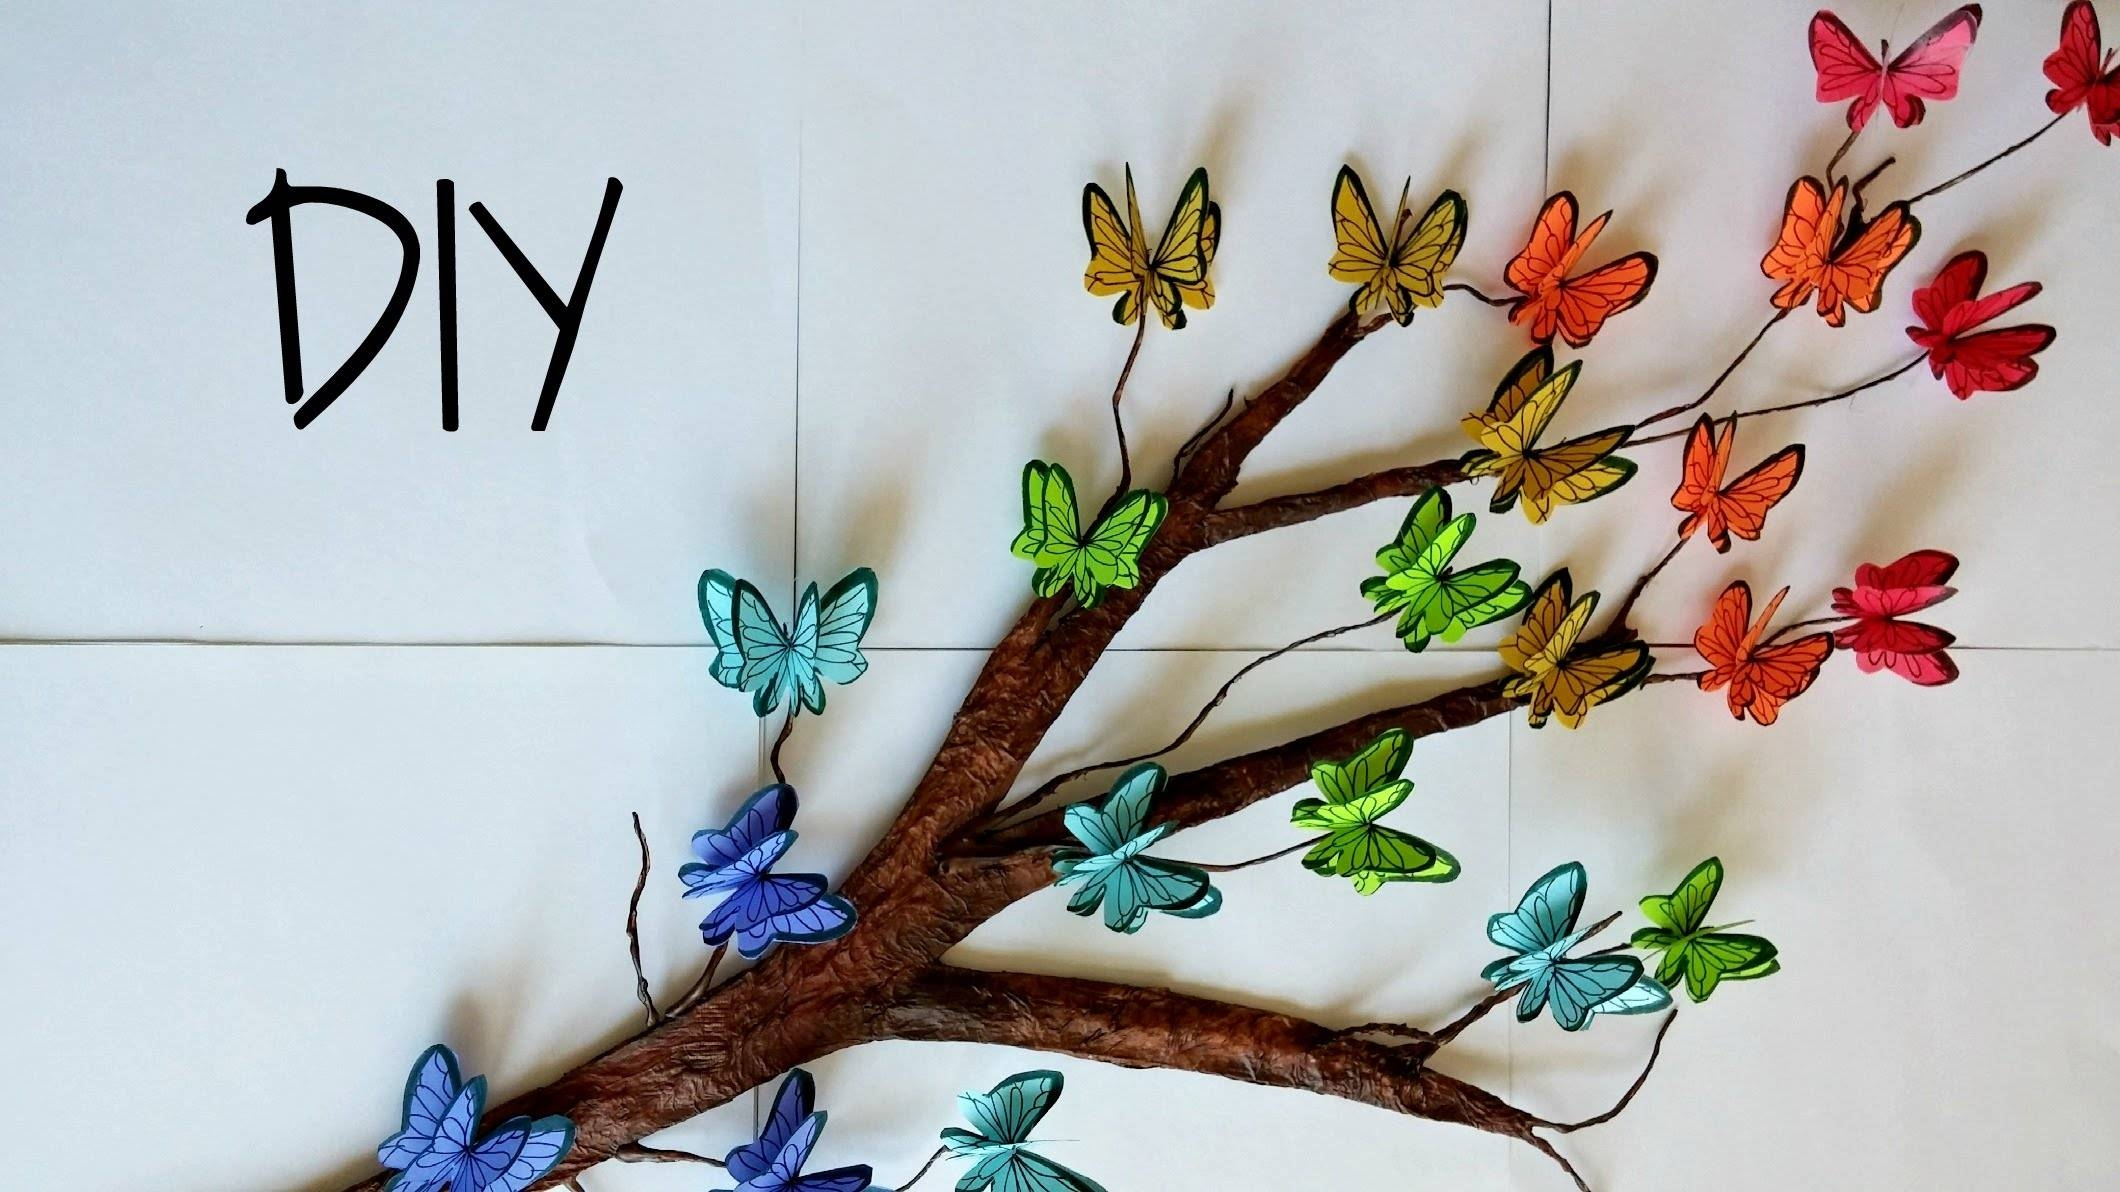 Diy Tree Branch + 3D Butterflies ? // Room Decor – Youtube Intended For Most Recently Released Diy 3D Wall Art Butterflies (View 10 of 20)